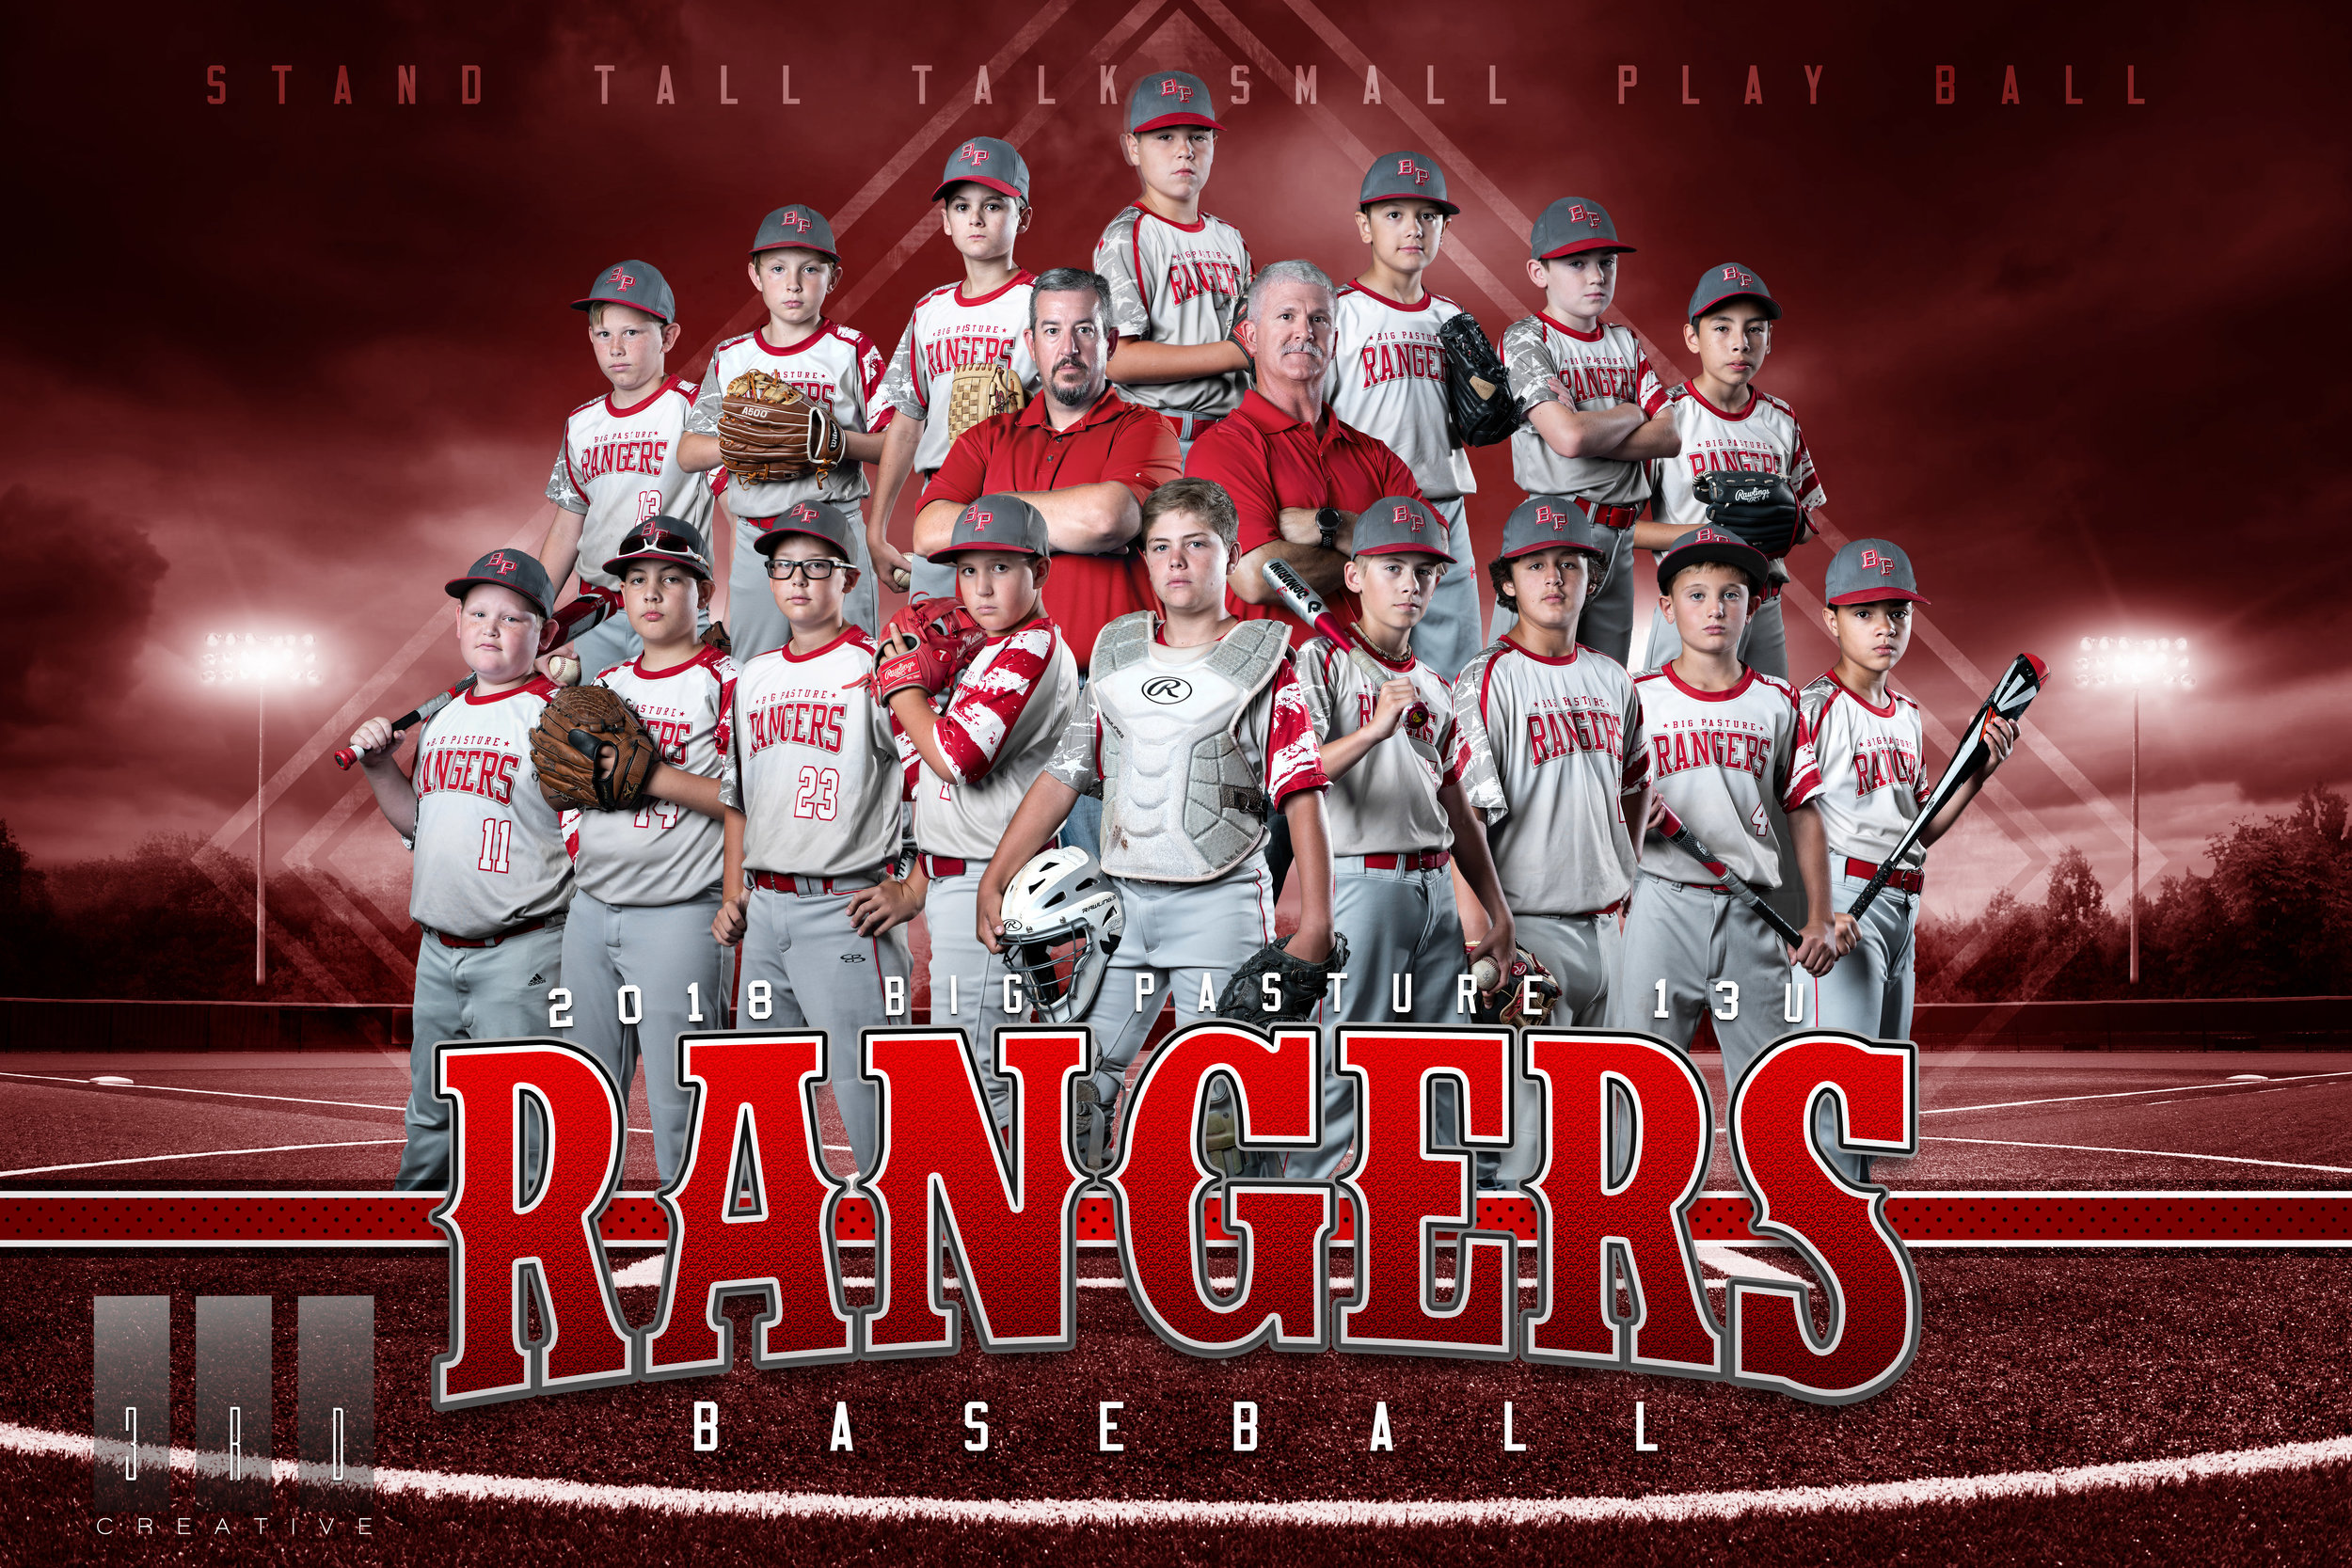 Rangers_Horizontal-24x16_Red.jpg